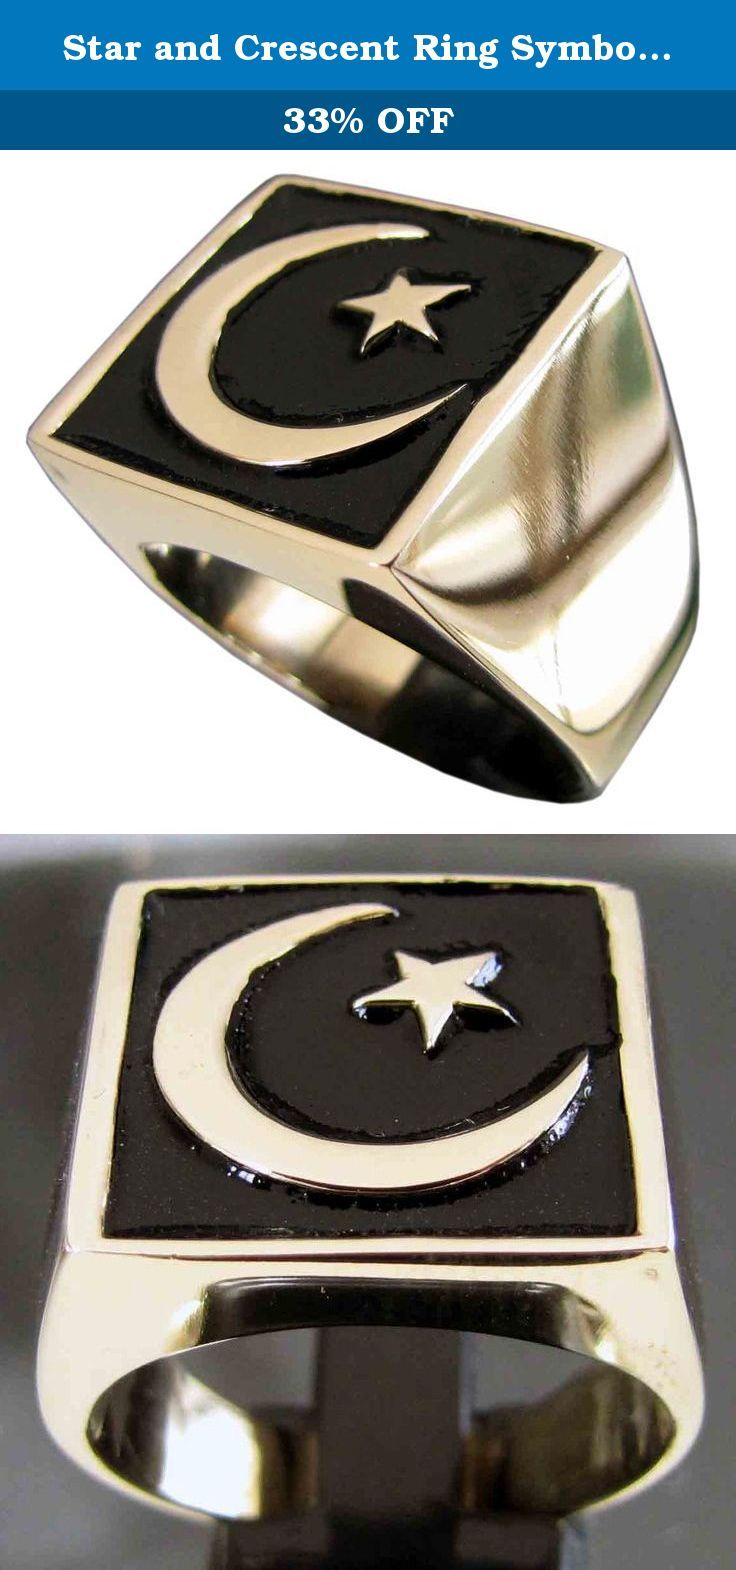 Star and Crescent Ring Symbol of Islam in Bronze with Black Enamel - size 4 to 16. A unique design, hand crafted and highly detailed. This ring is solid bronze but shines like gold. The Process First, the ring is carefully carved out of wax which is then used to form a plaster mold. Next, castings can be made with molten metal, ie. sterling silver and bronze. Then are the final stages of hand polishing and thorough quality checks. Sizing: Although it can sometimes be difficult to…